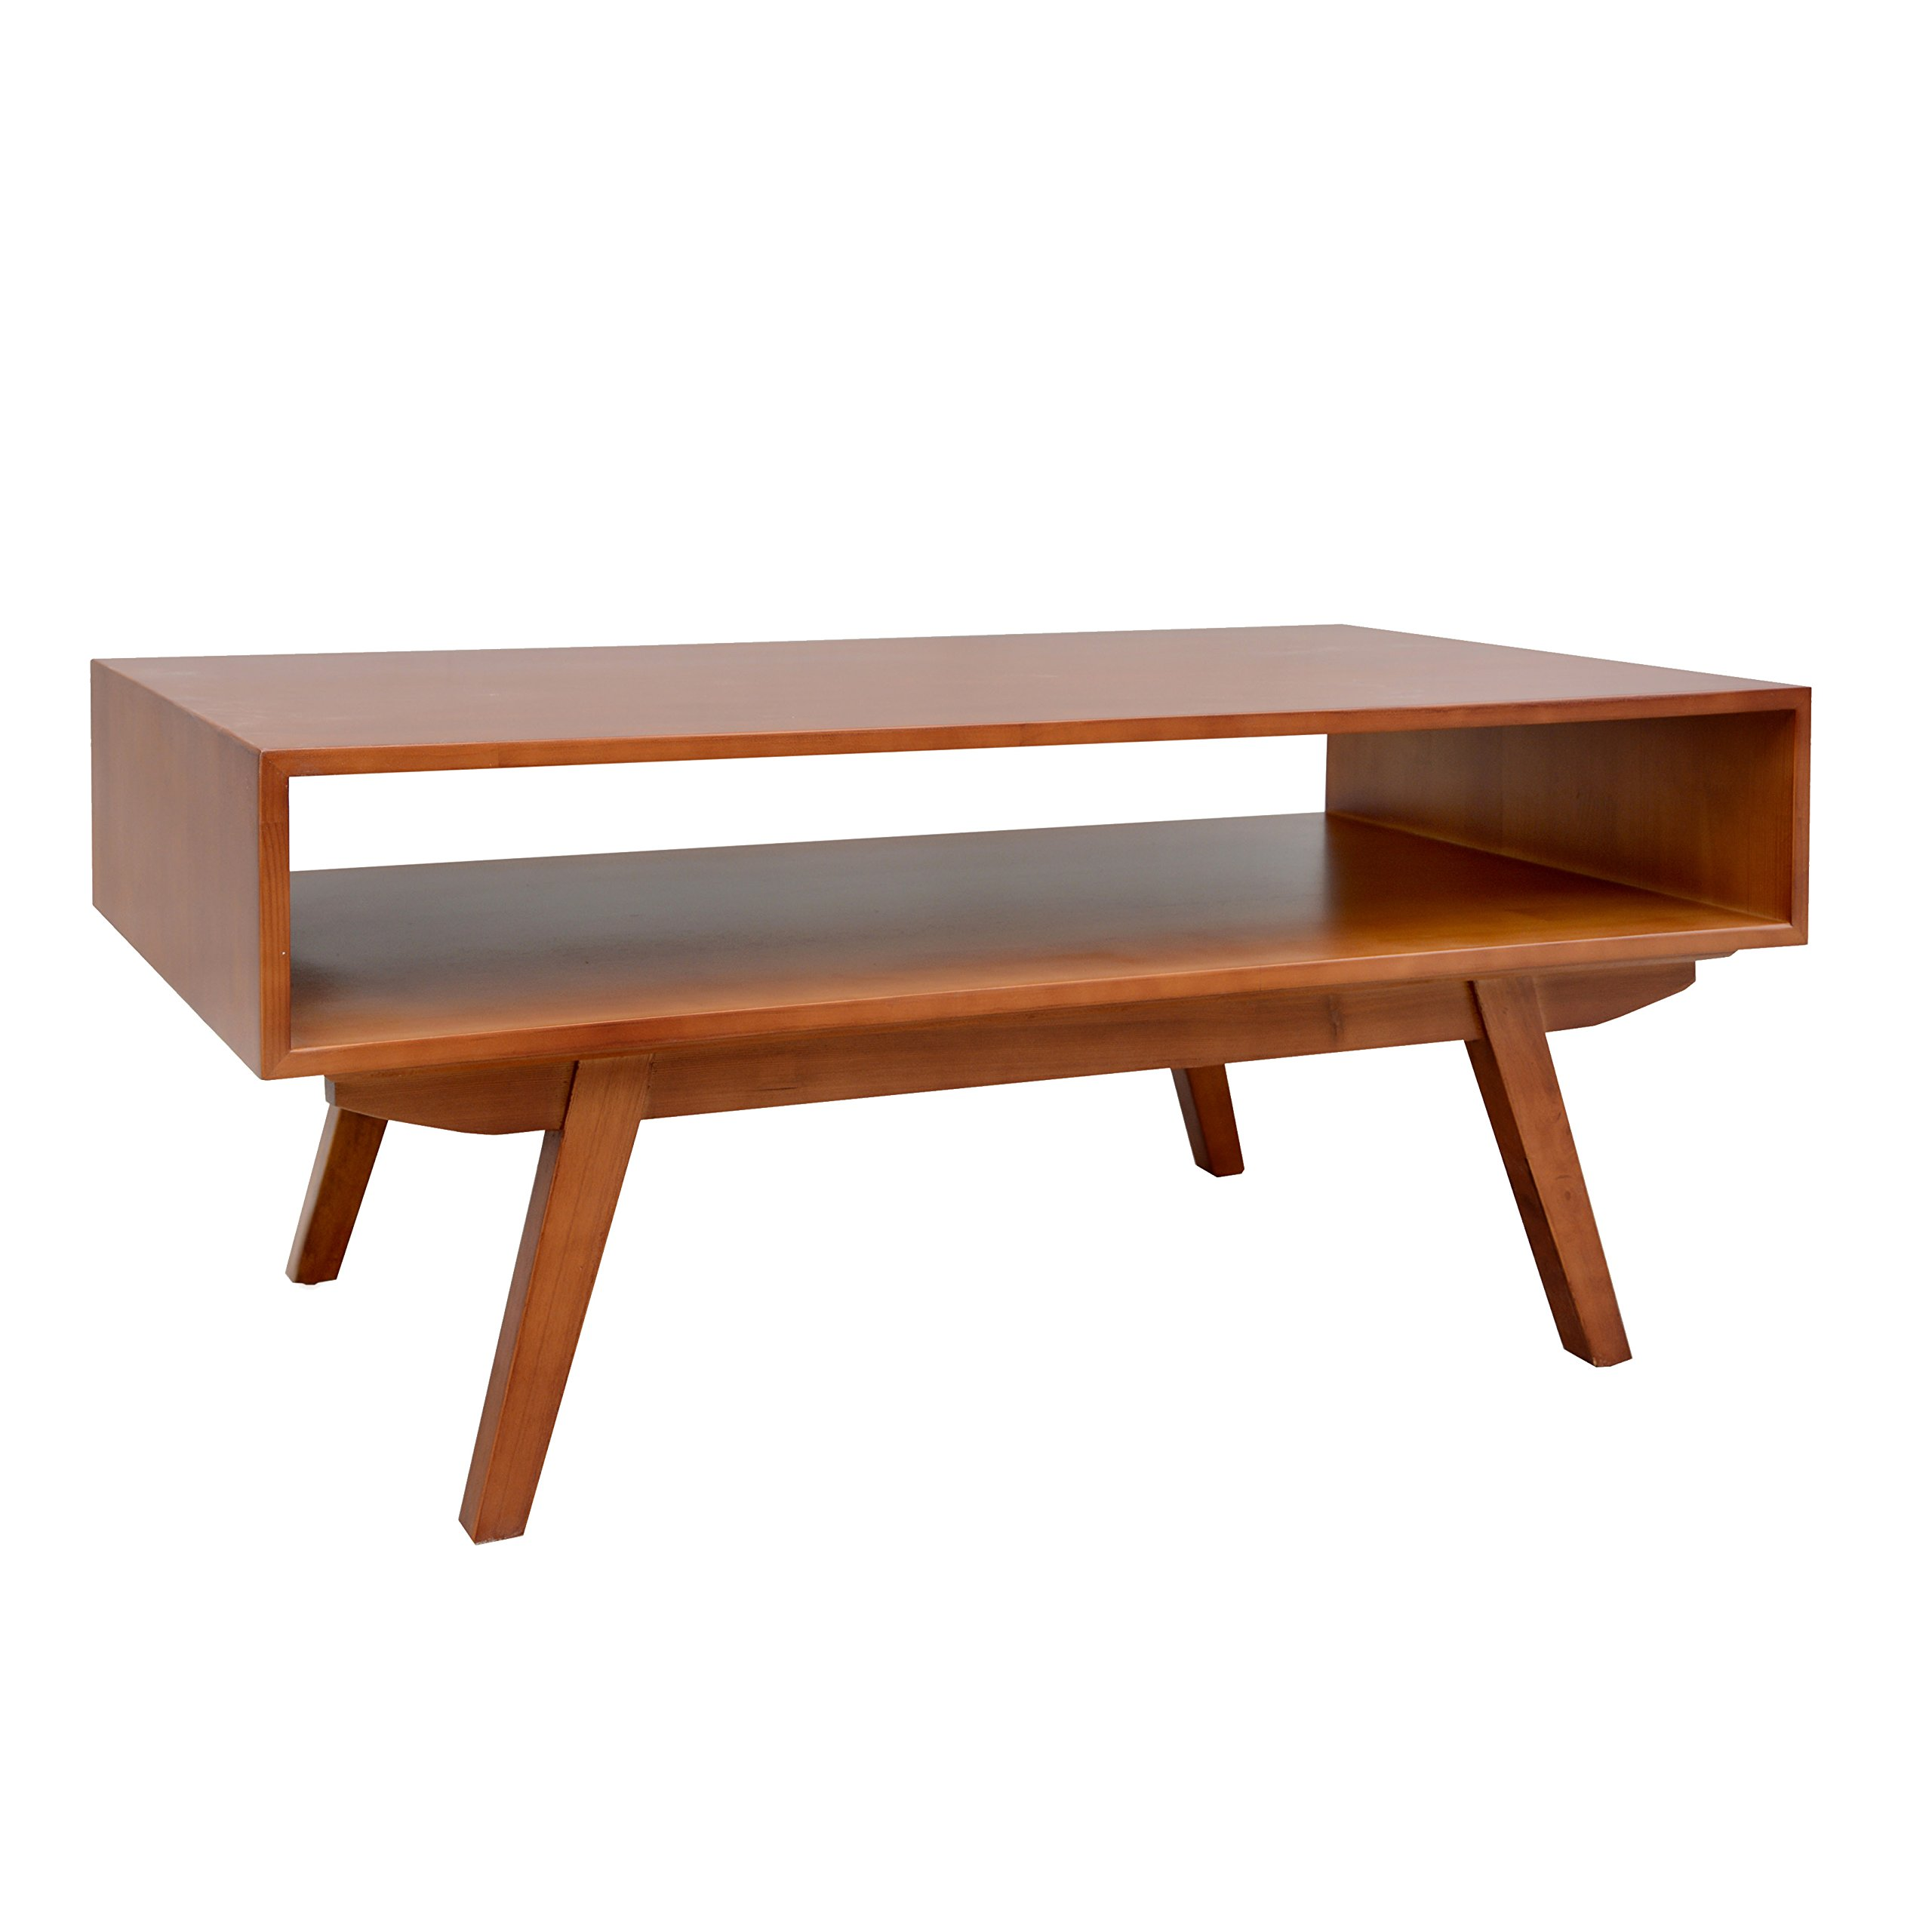 Porthos Home Mid-Century Modern Crawford Coffee Table, Natural by Porthos Home